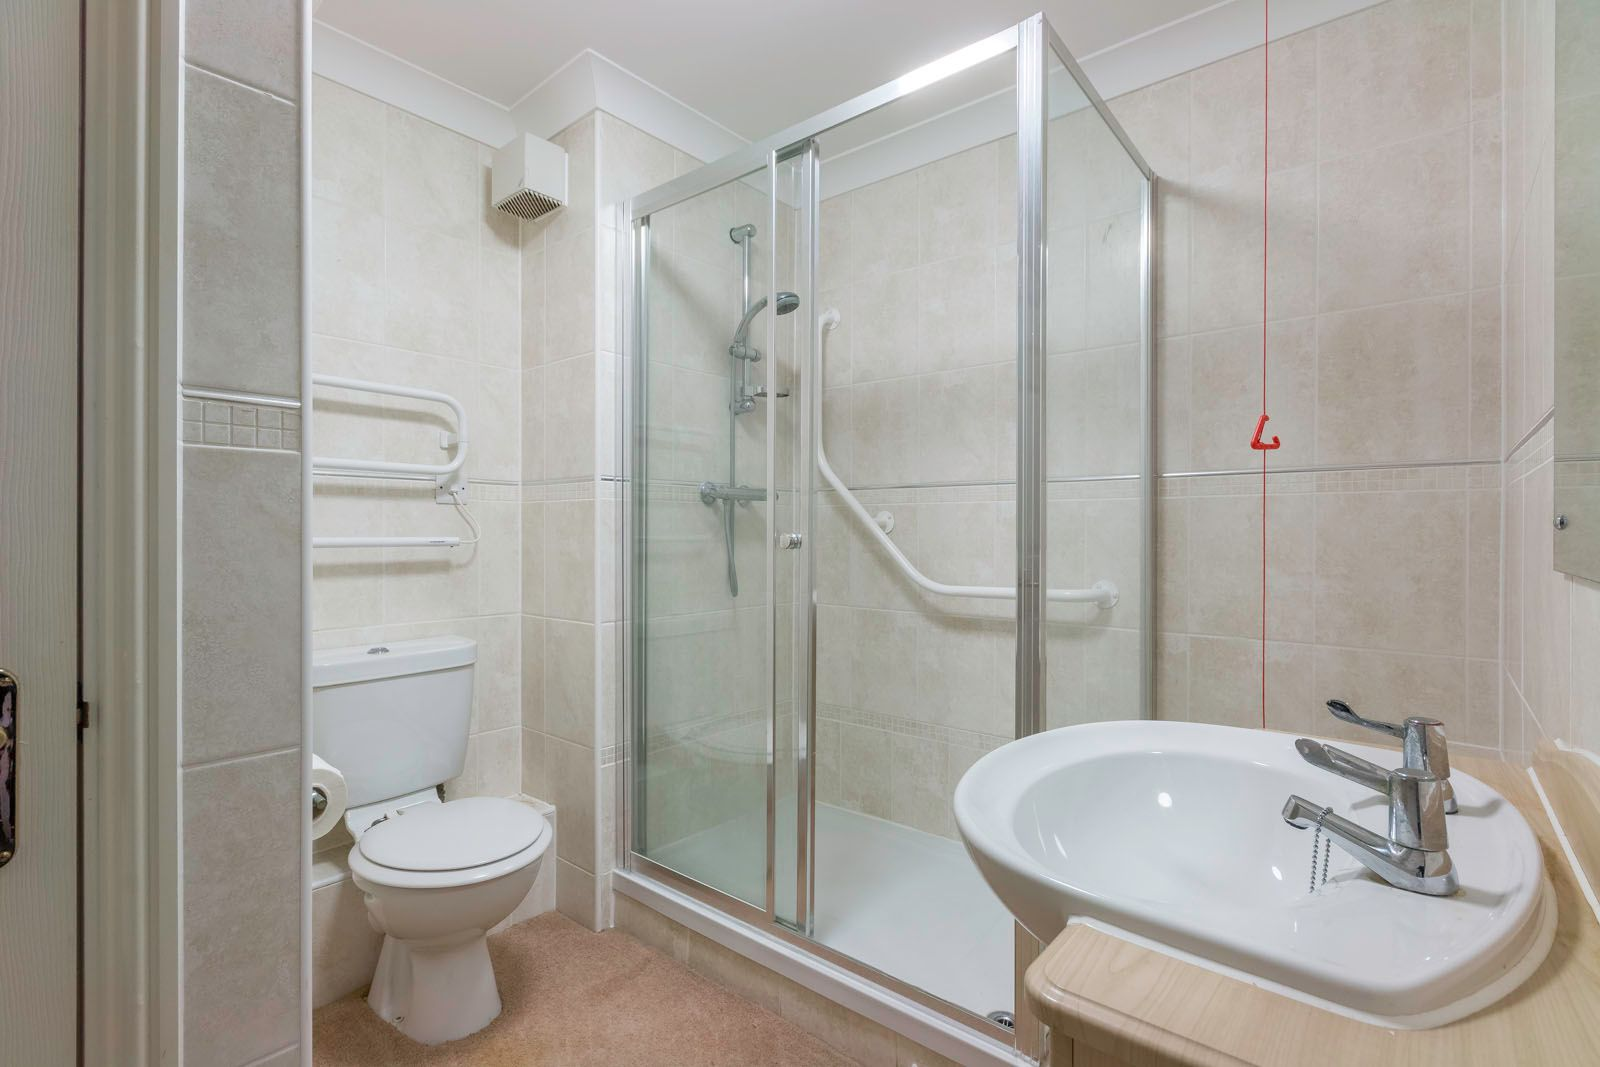 1 bed for sale in East Preston - Photo 3 (Property Image 5)